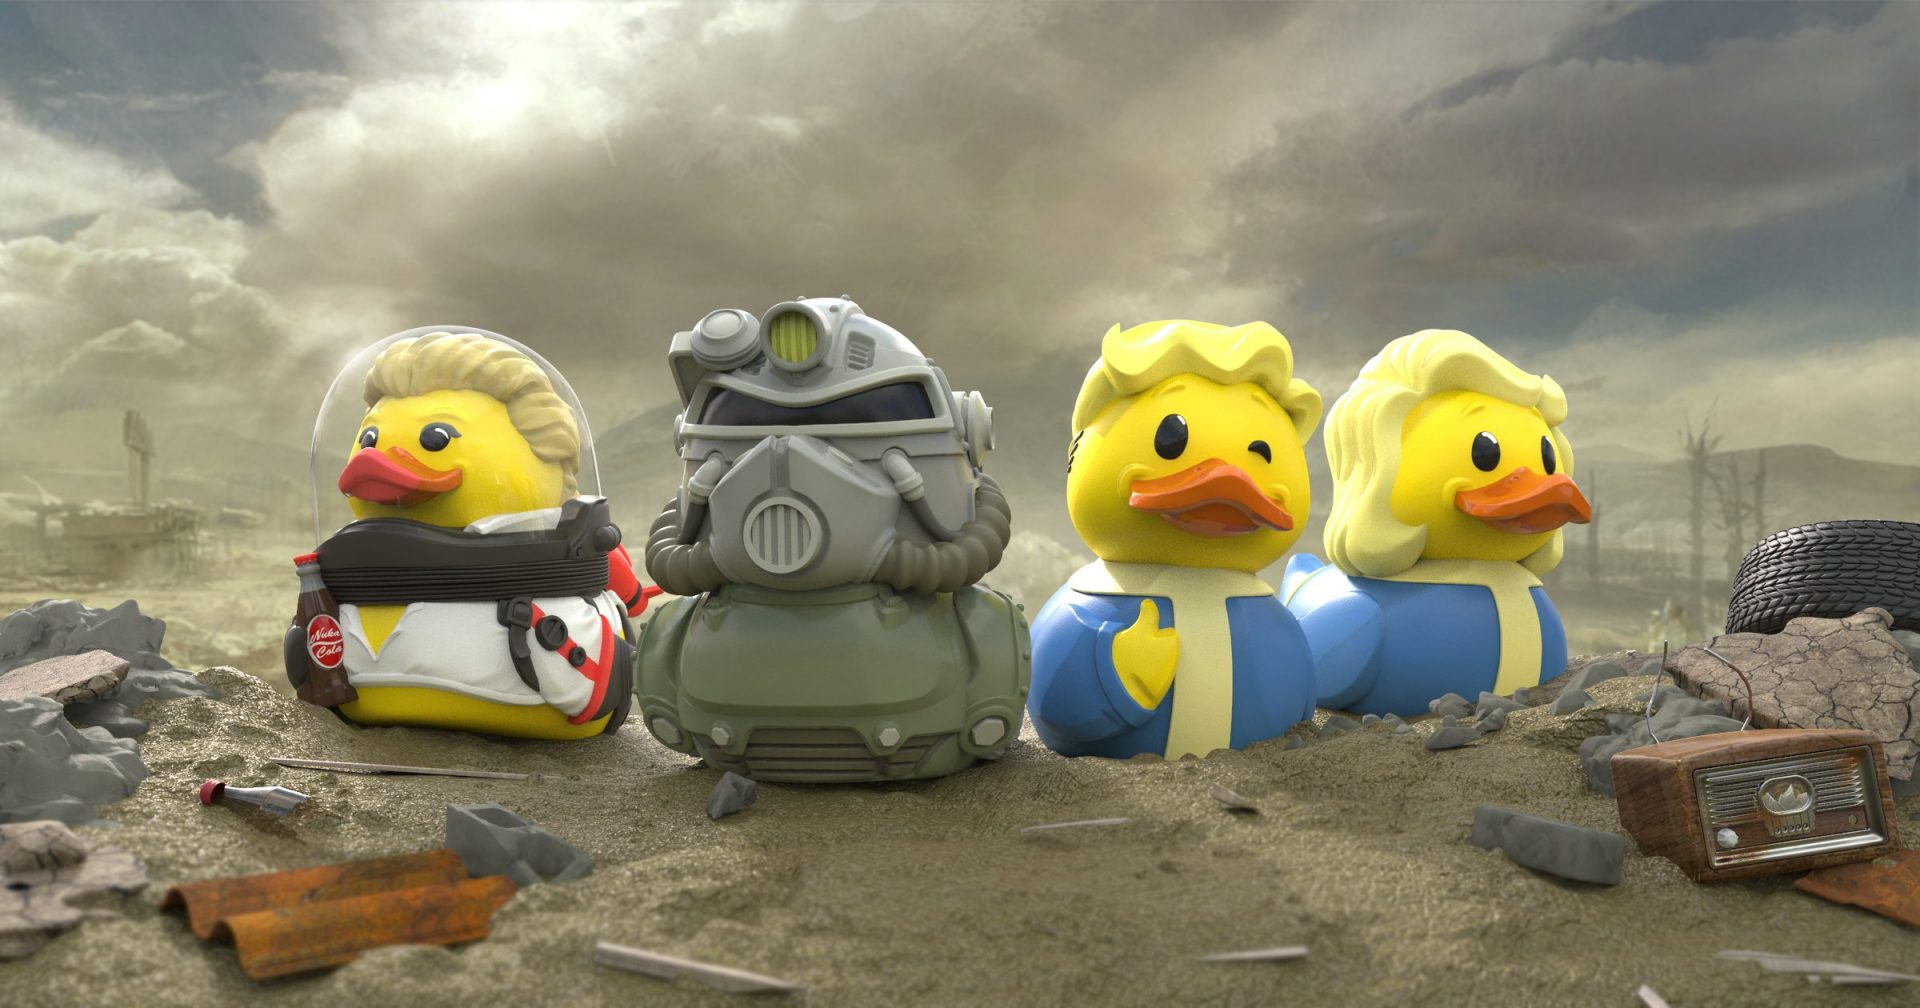 884bb35e85c Numskull introduce TUBBZ The Collectable Cosplaying Ducks | Invision ...